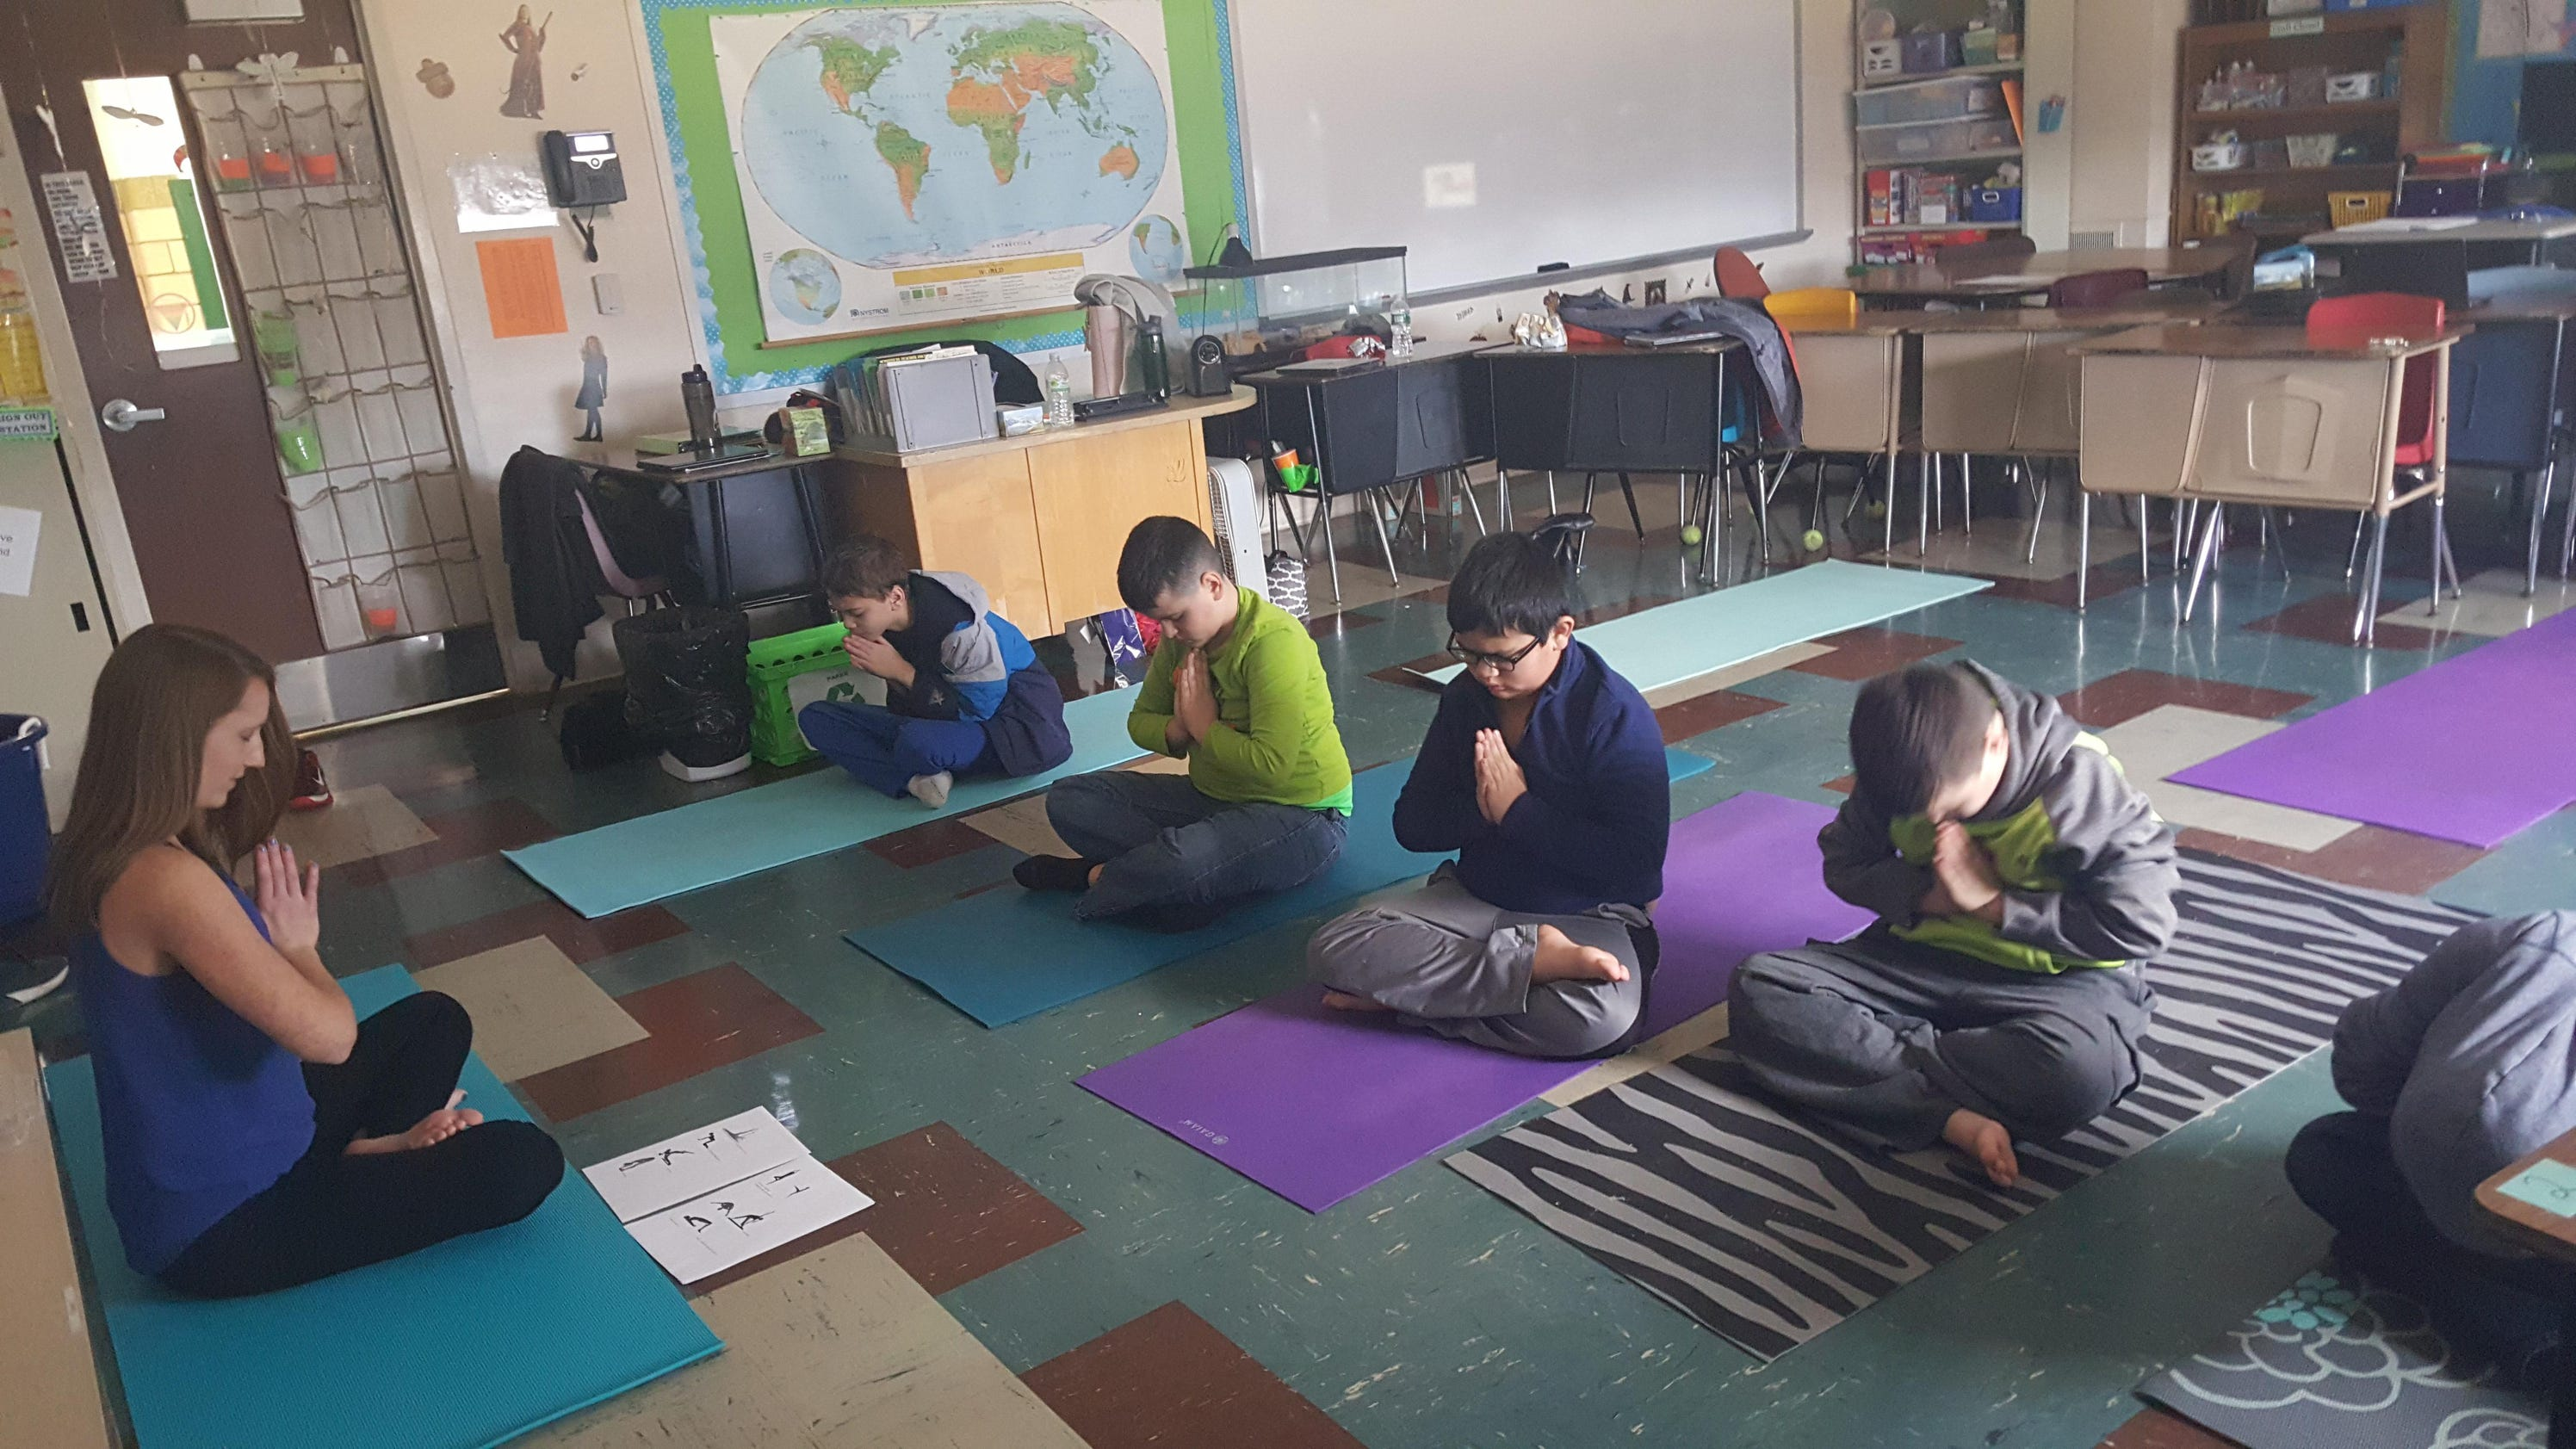 Modular Classroom Yoga ~ Yoga helping students focus at roxbury school